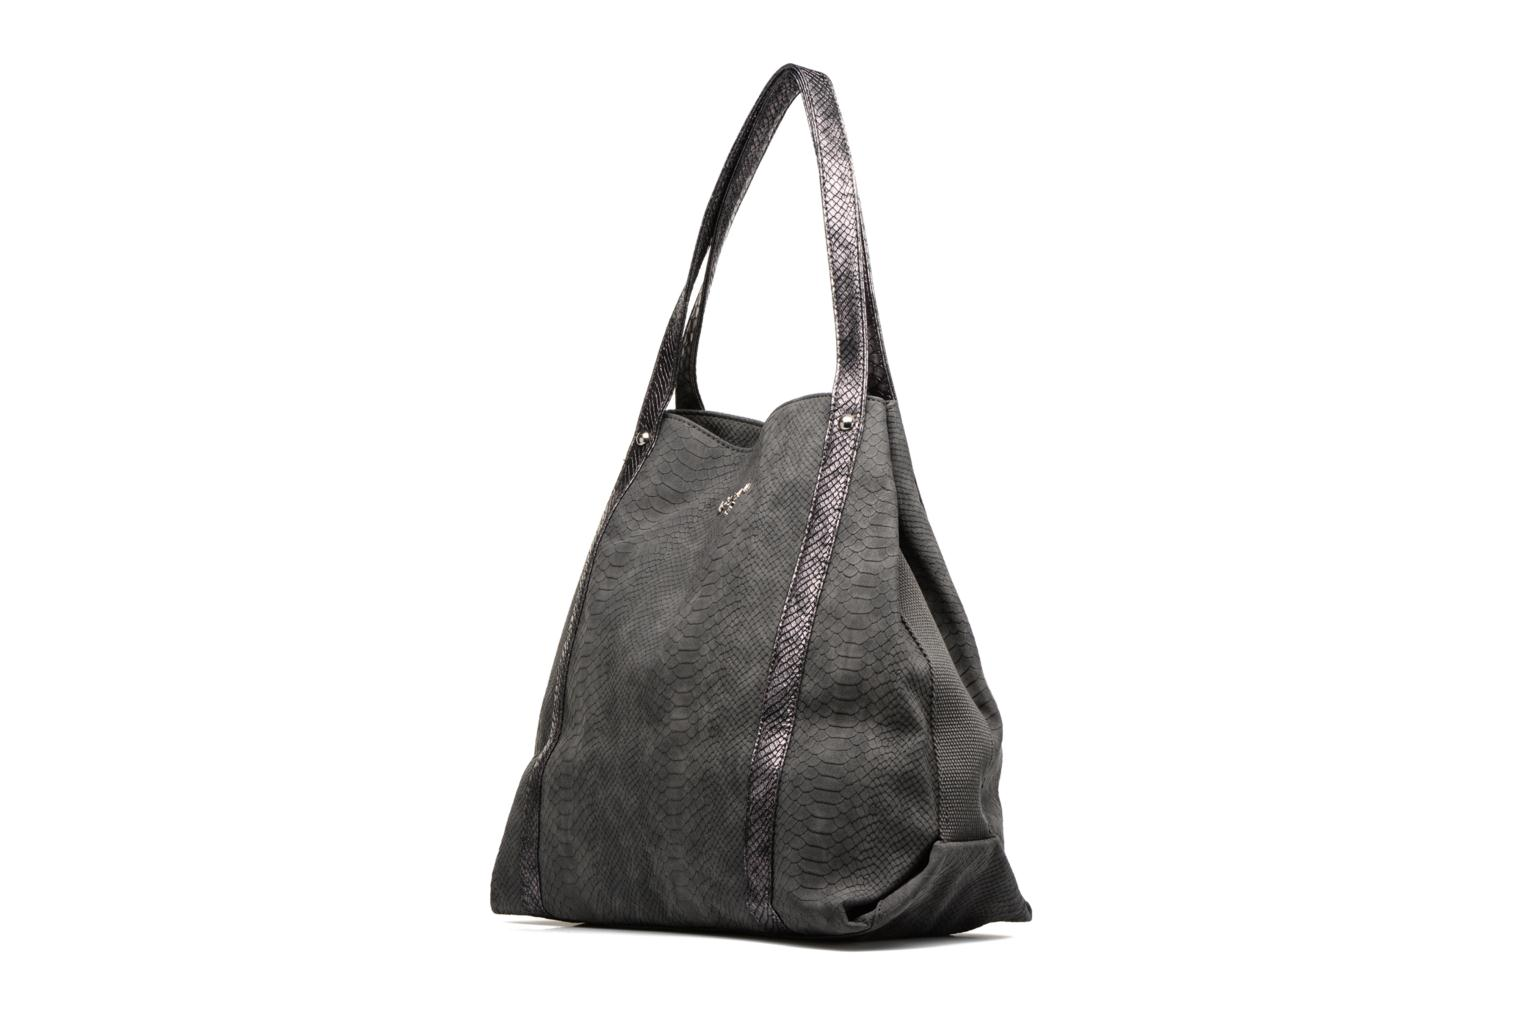 Sac Tote Caba Noir light